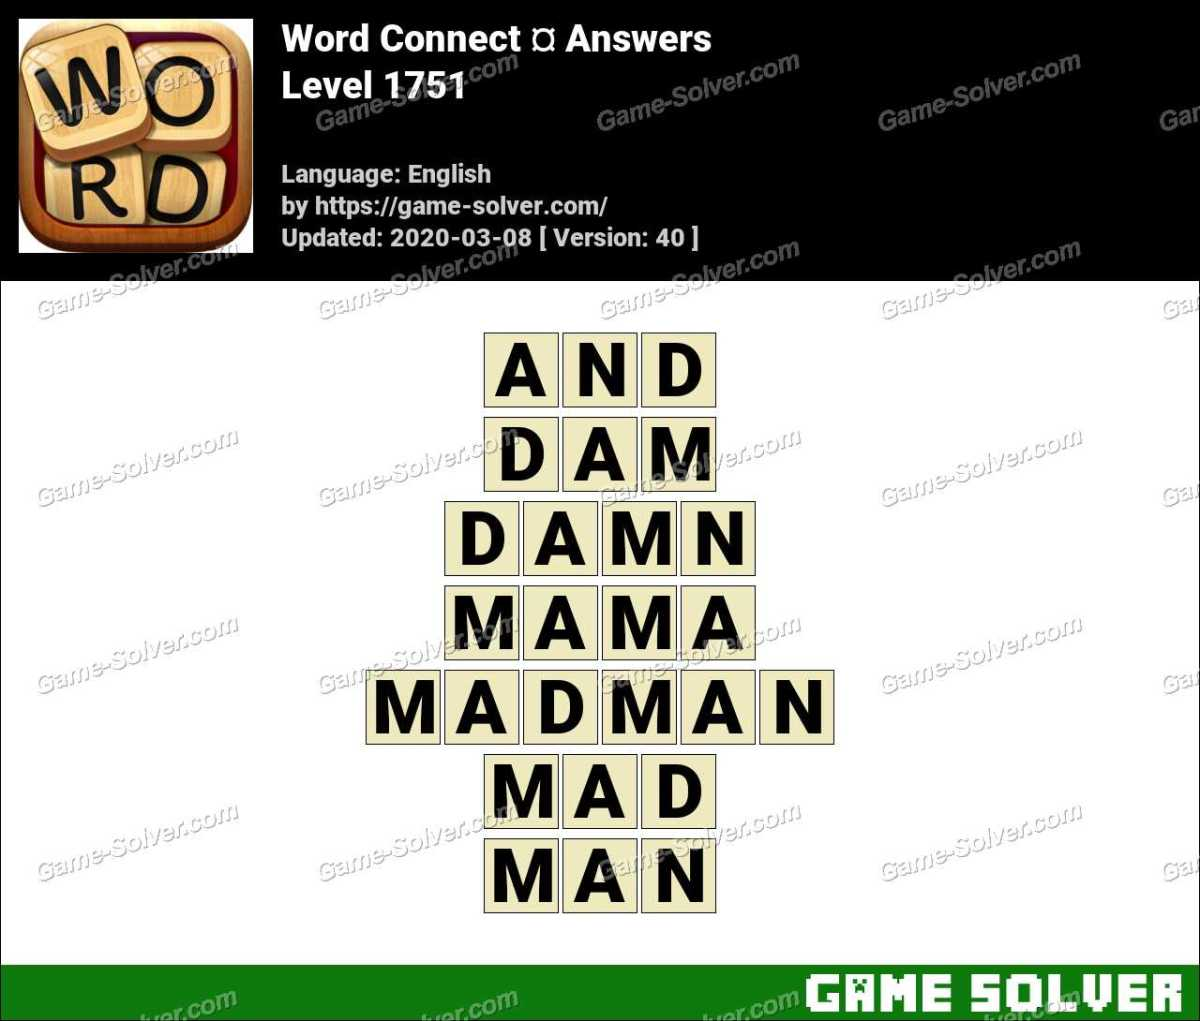 Word Connect Level 1751 Answers